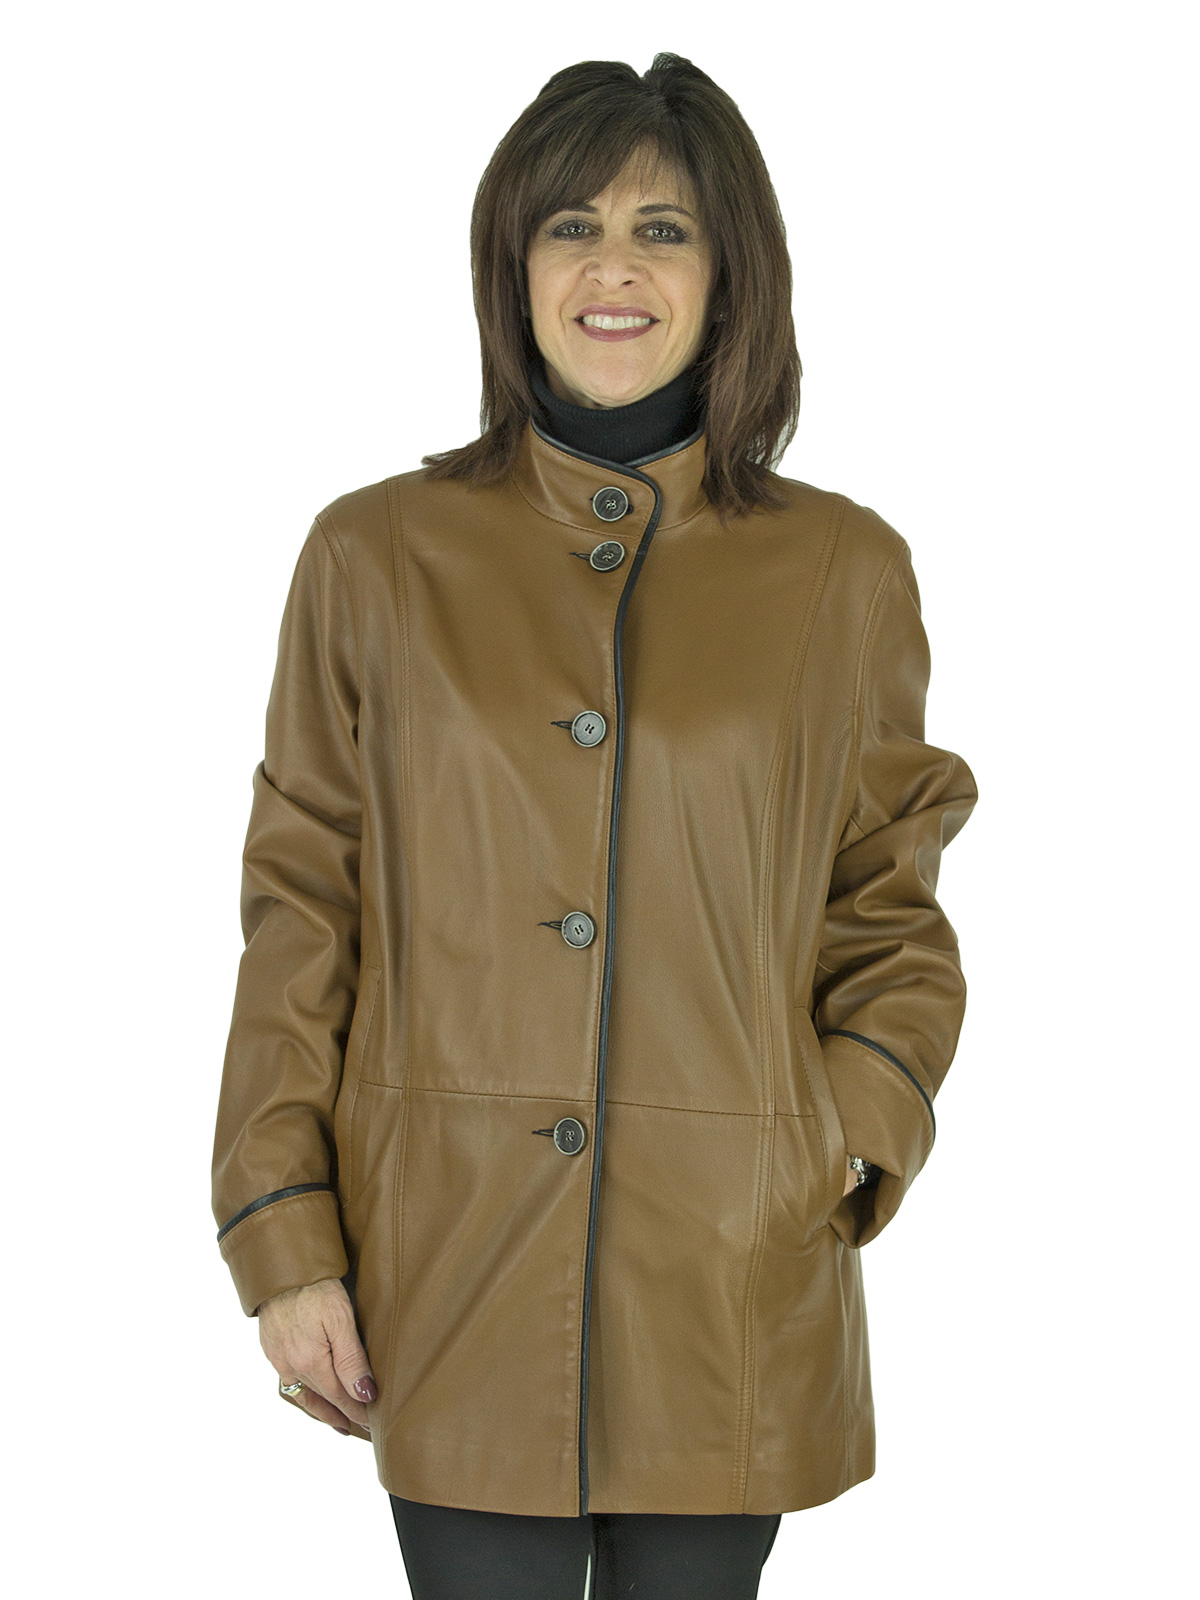 Woman's Camel Leather Jacket Reversible to Black Rain Fabric